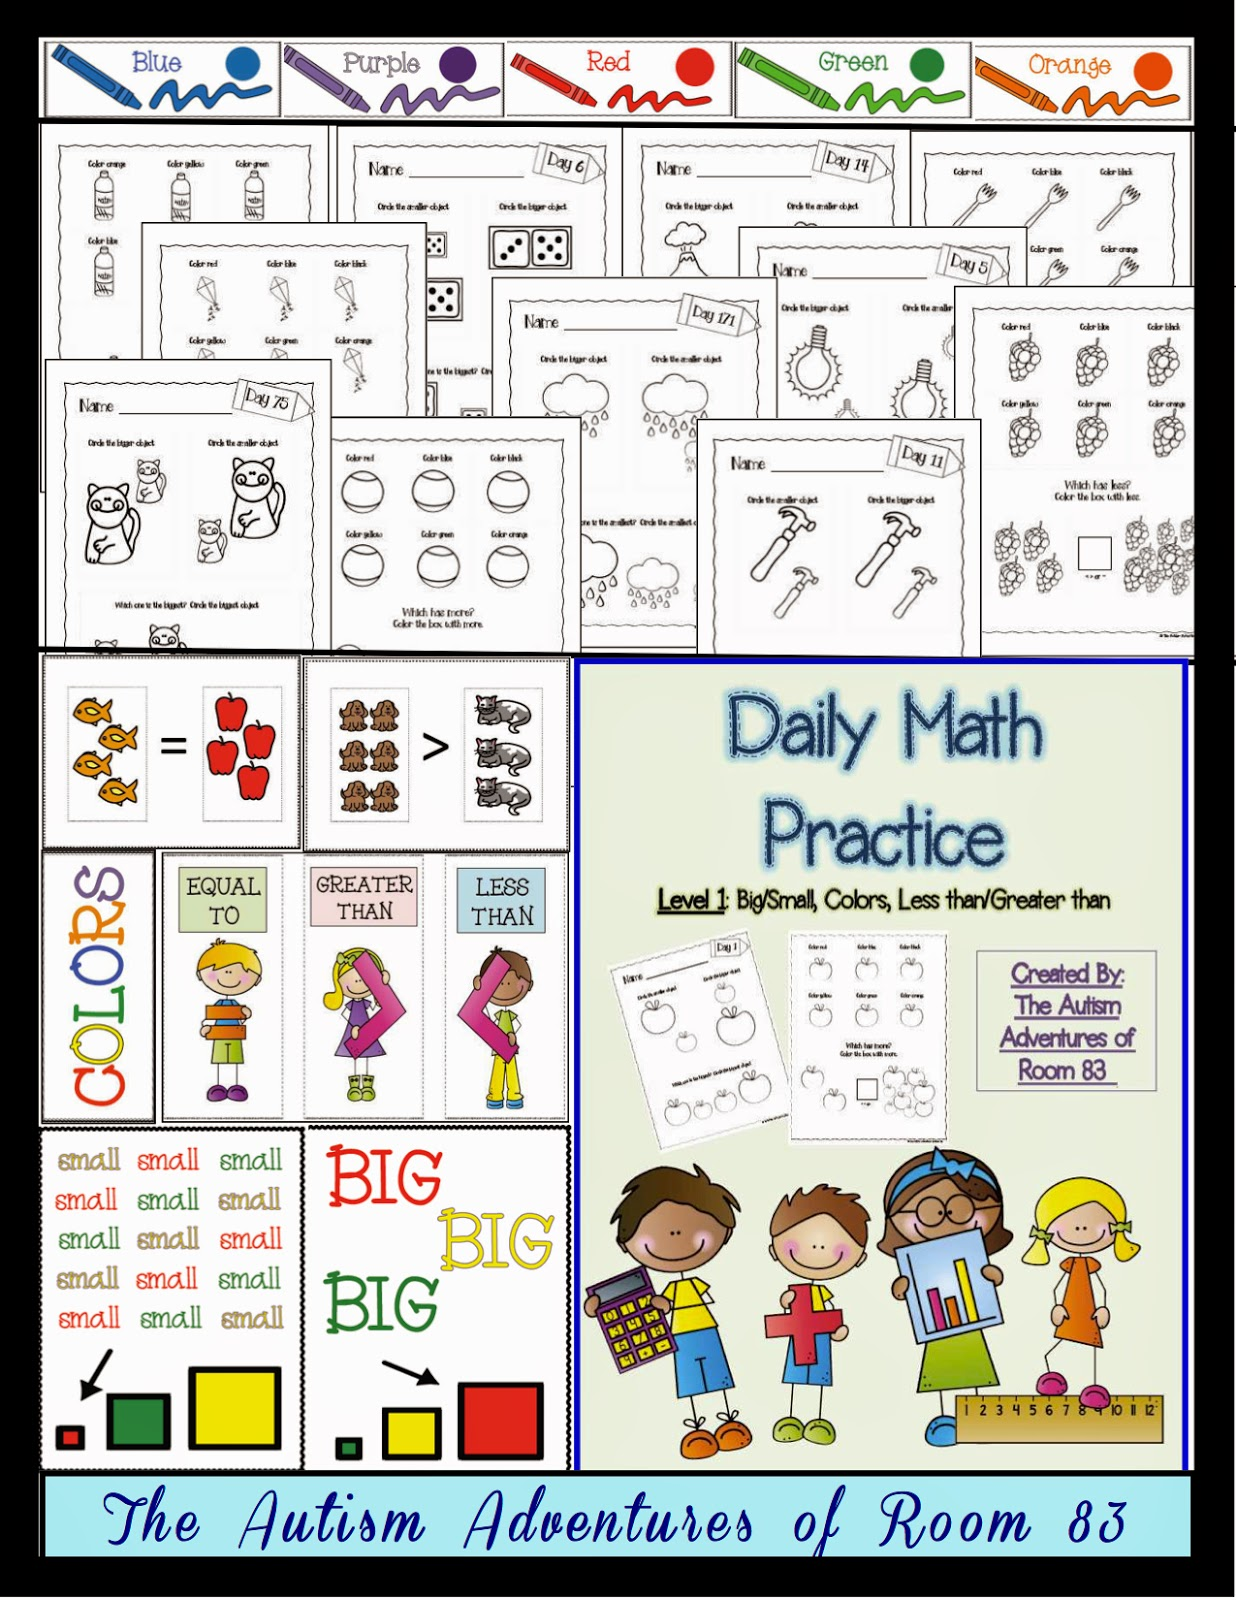 Worksheet Daily Math Practice Worksheets daily math practice level 1 bigsmall moreless colors the i created a curriculum that provides on each skill is sold as l